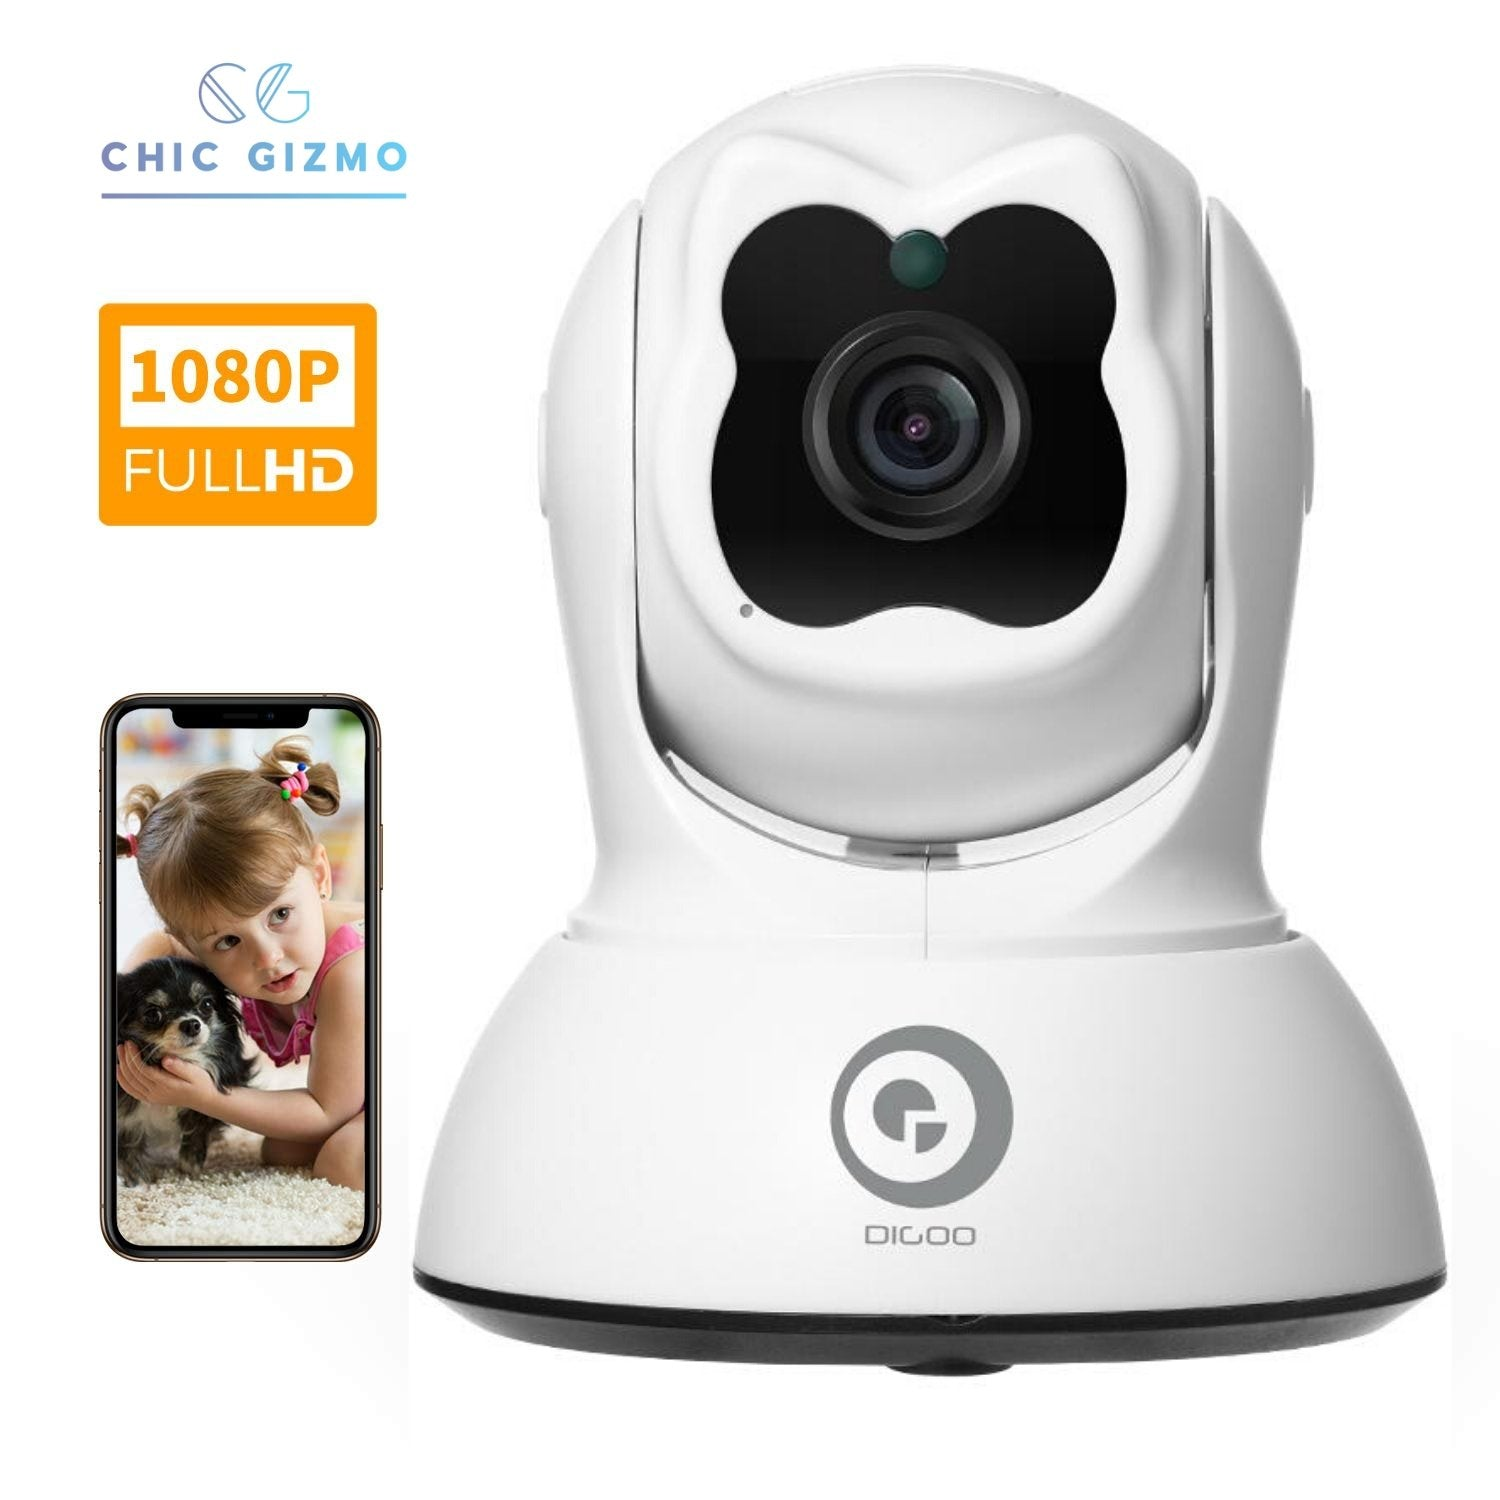 Home Security Camera & Audio Movement Detection - CHIC GIZMO